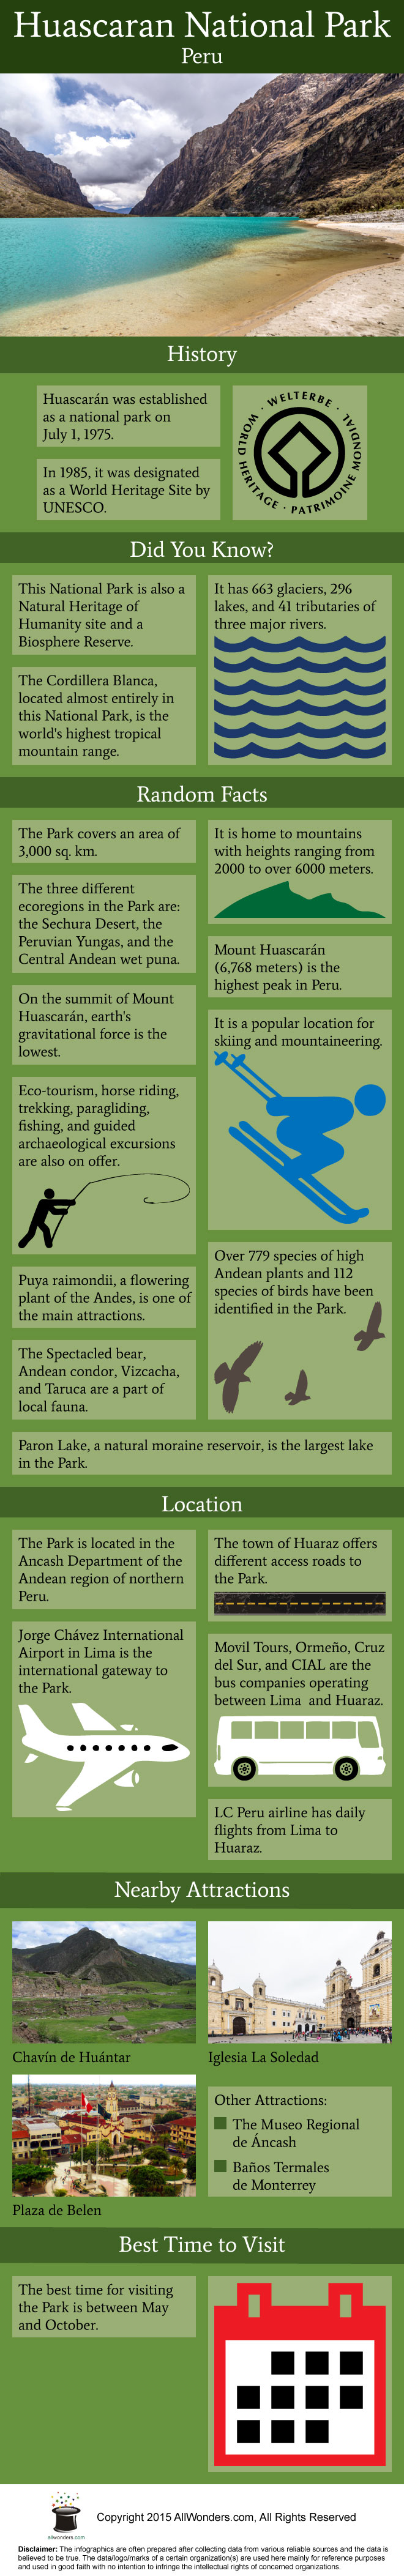 Huascaran National Park Infographic